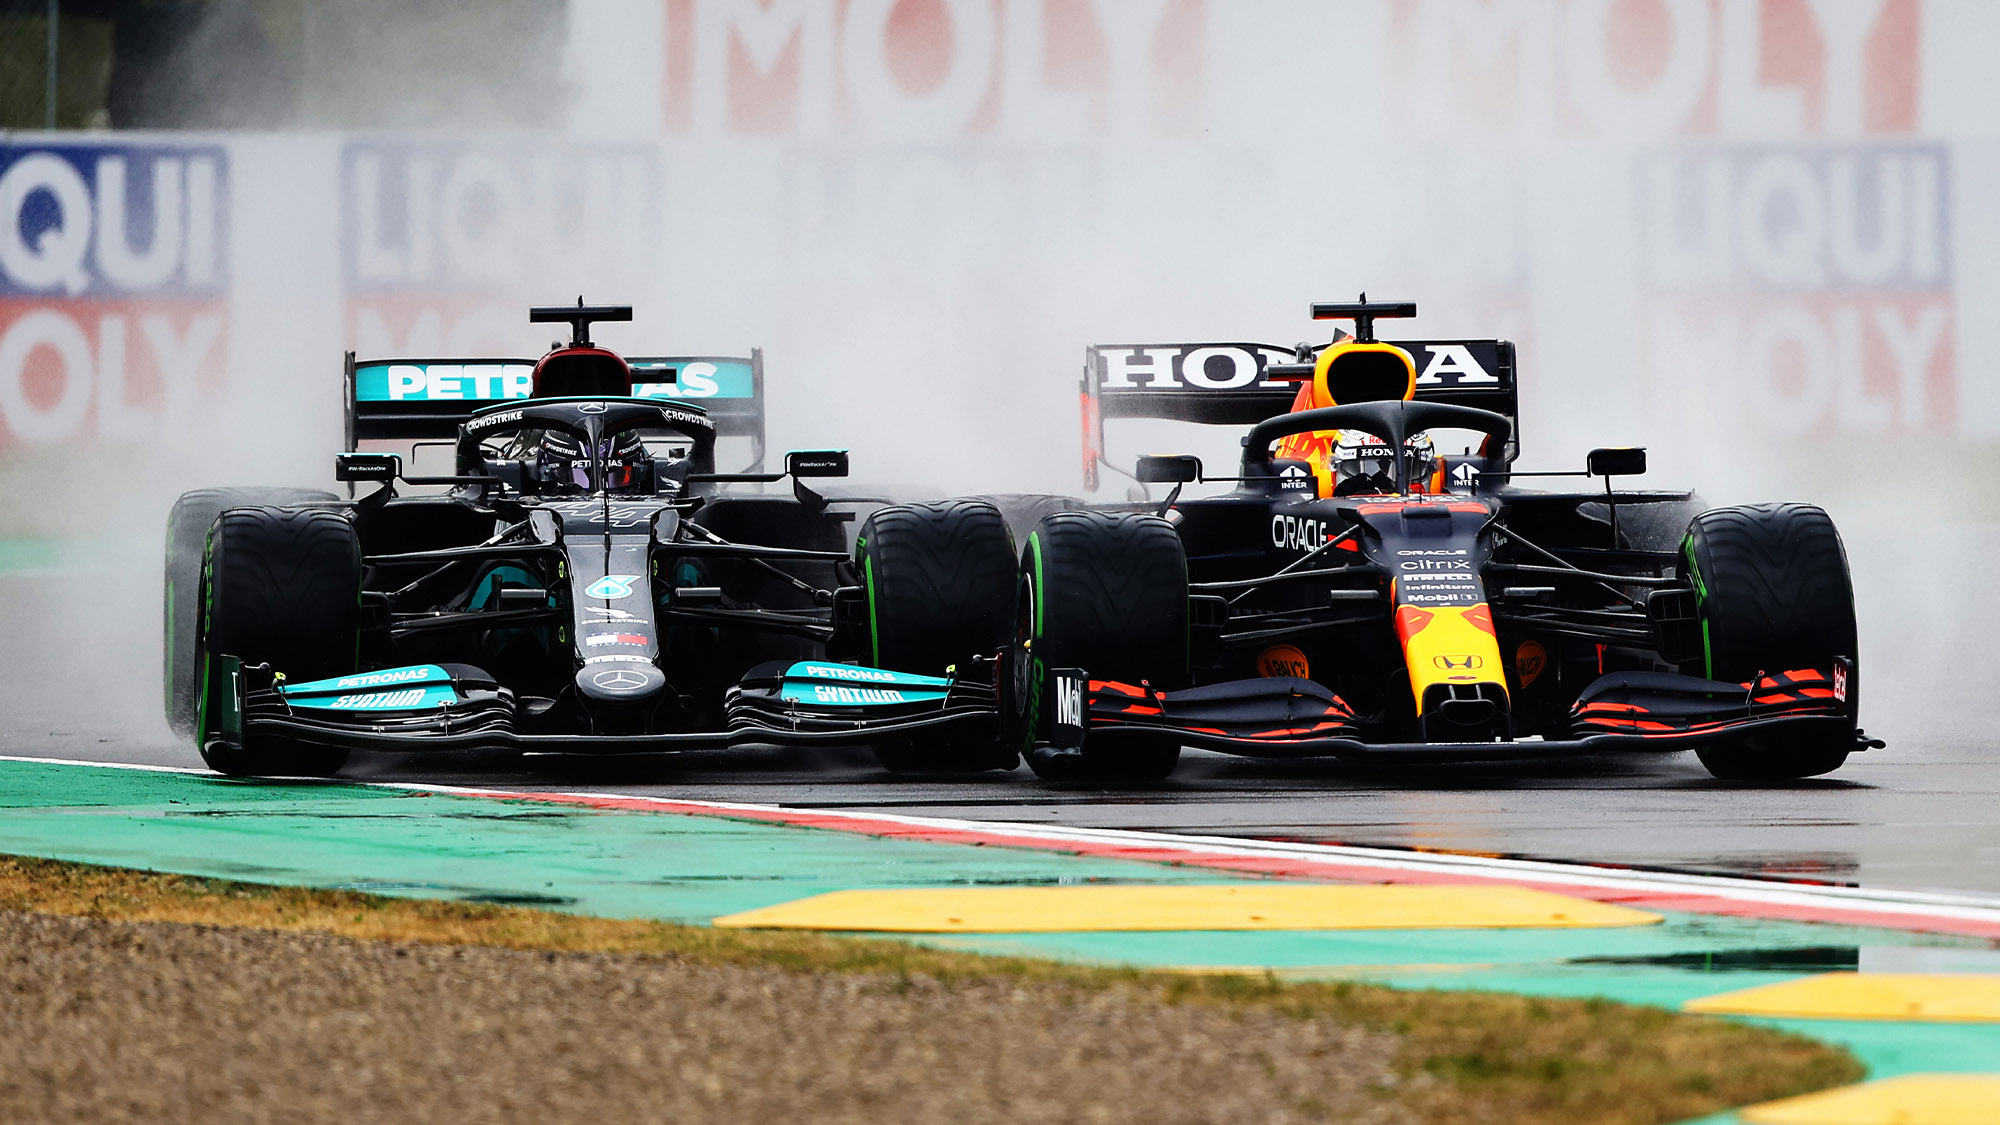 2021 Emilia Romagna GP report: damage limitation for Hamilton behind victorious Verstappen